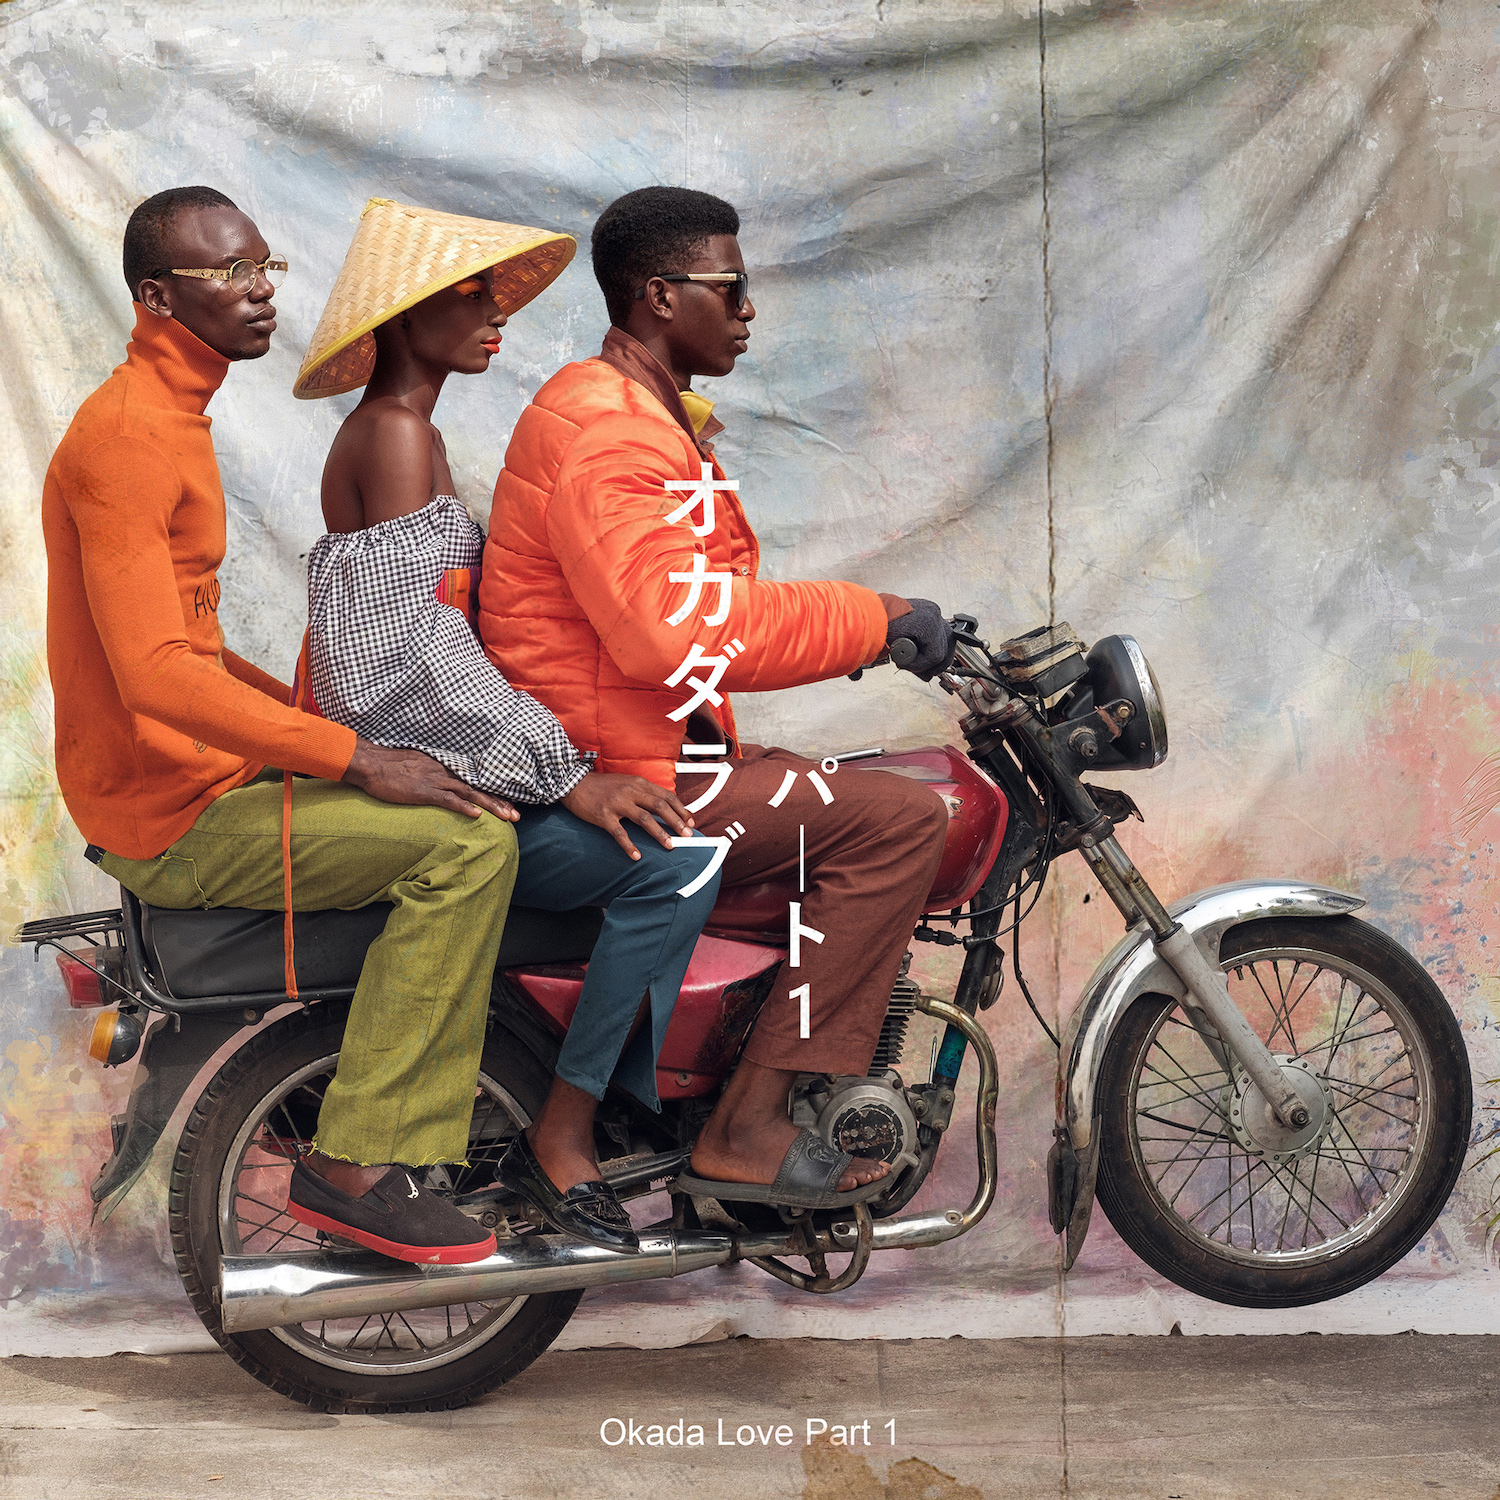 William Ukoh, Okada Love Pt. 1, 2018